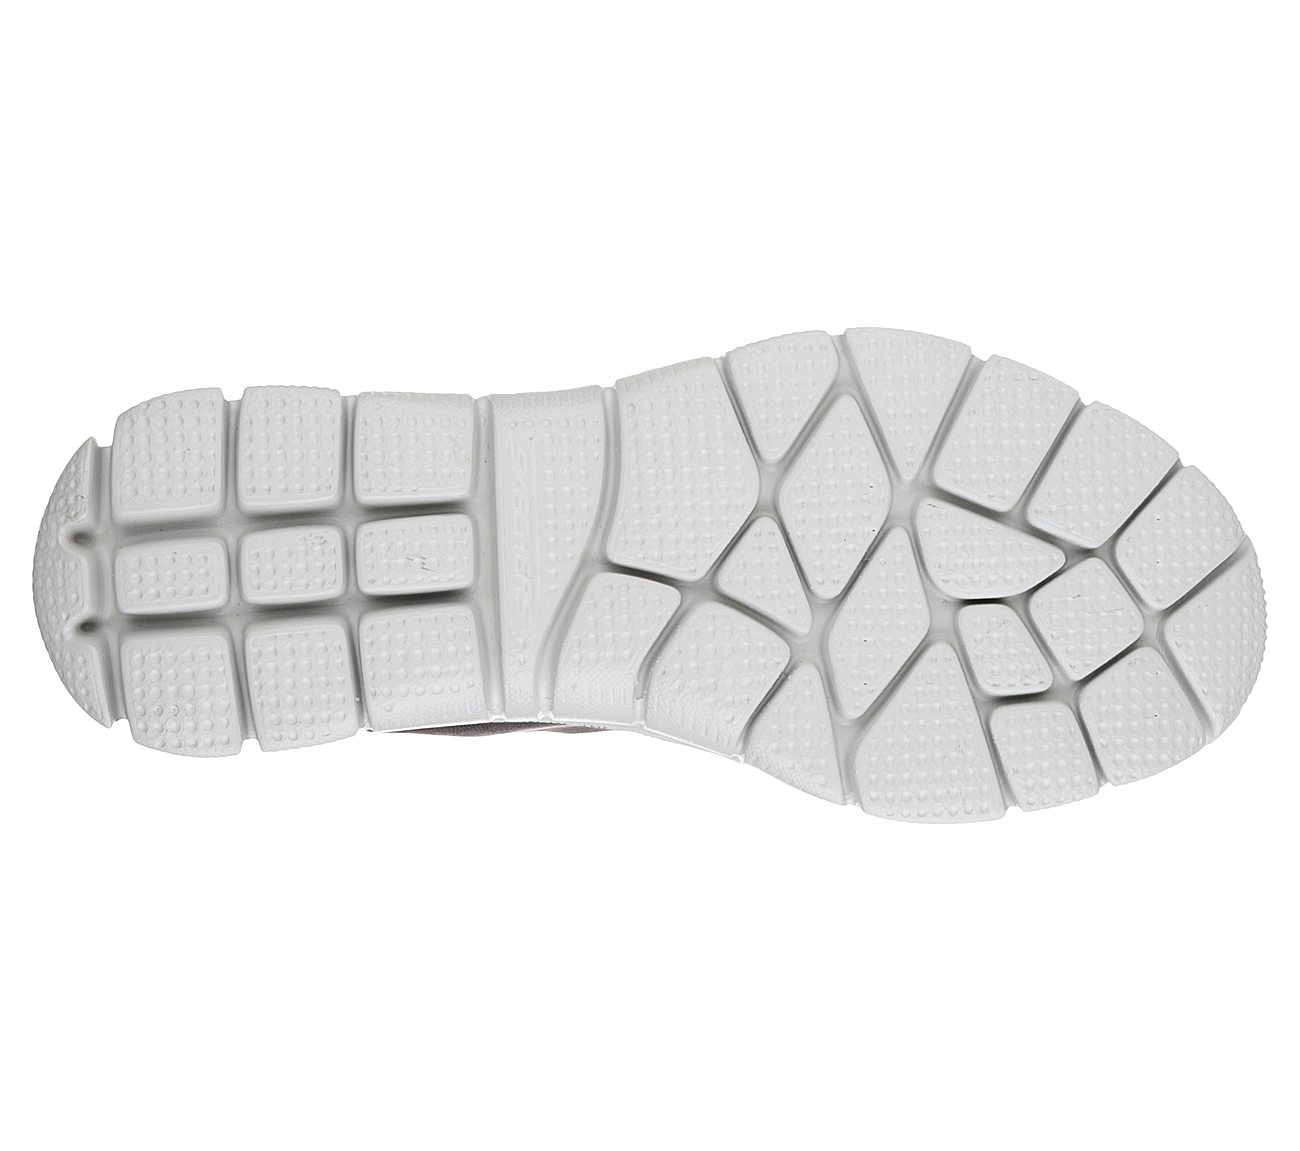 SKECHERS Relaxed fit, memory foam, air cooled